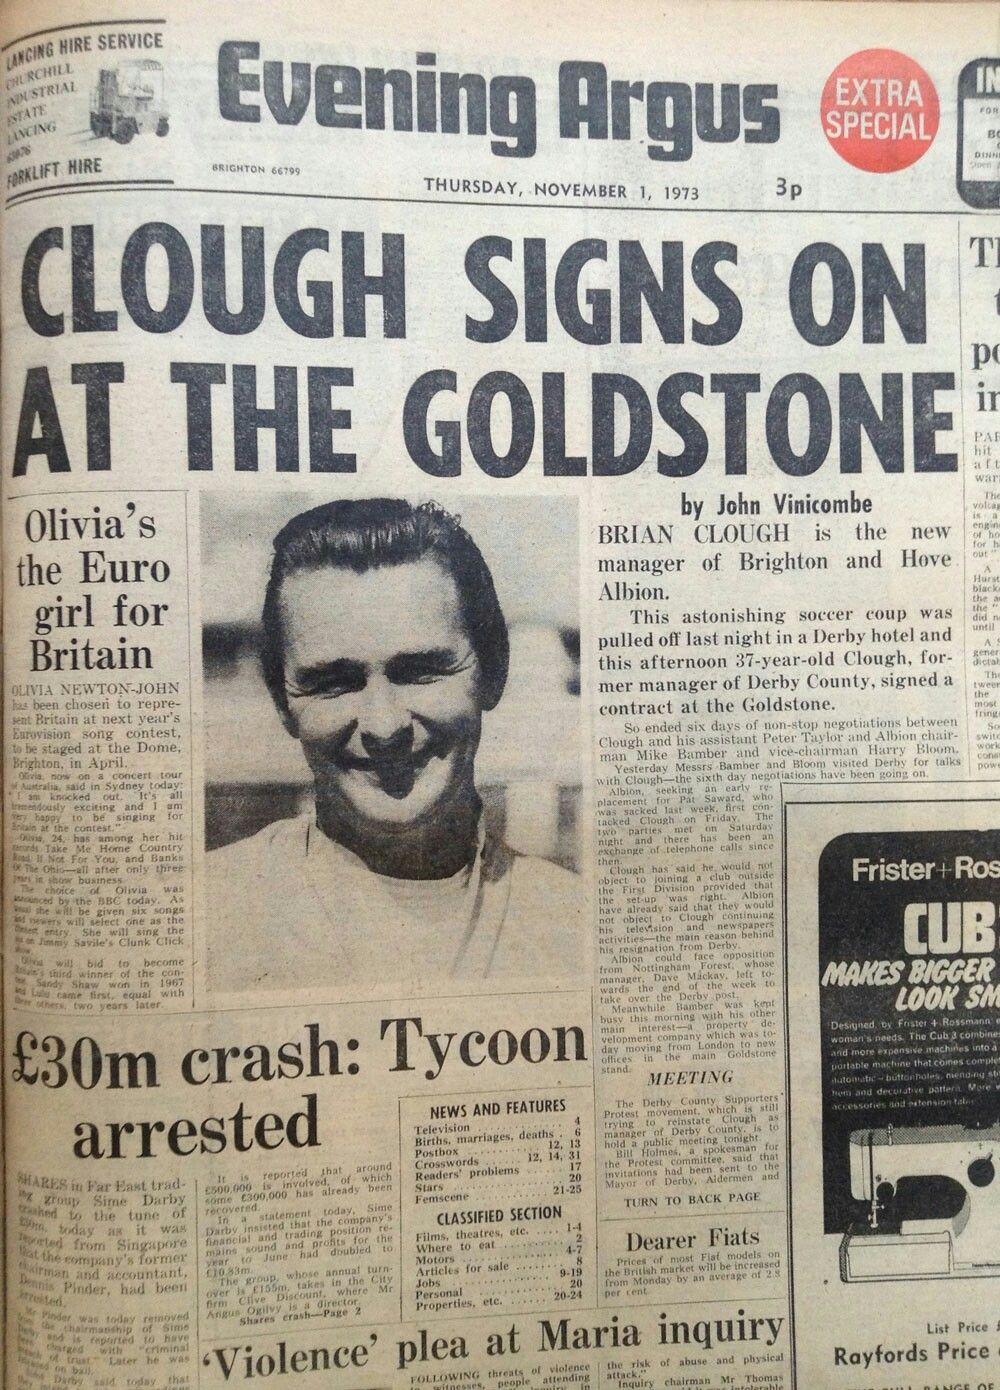 Brian clough takes over as brighton manager in nov 1973